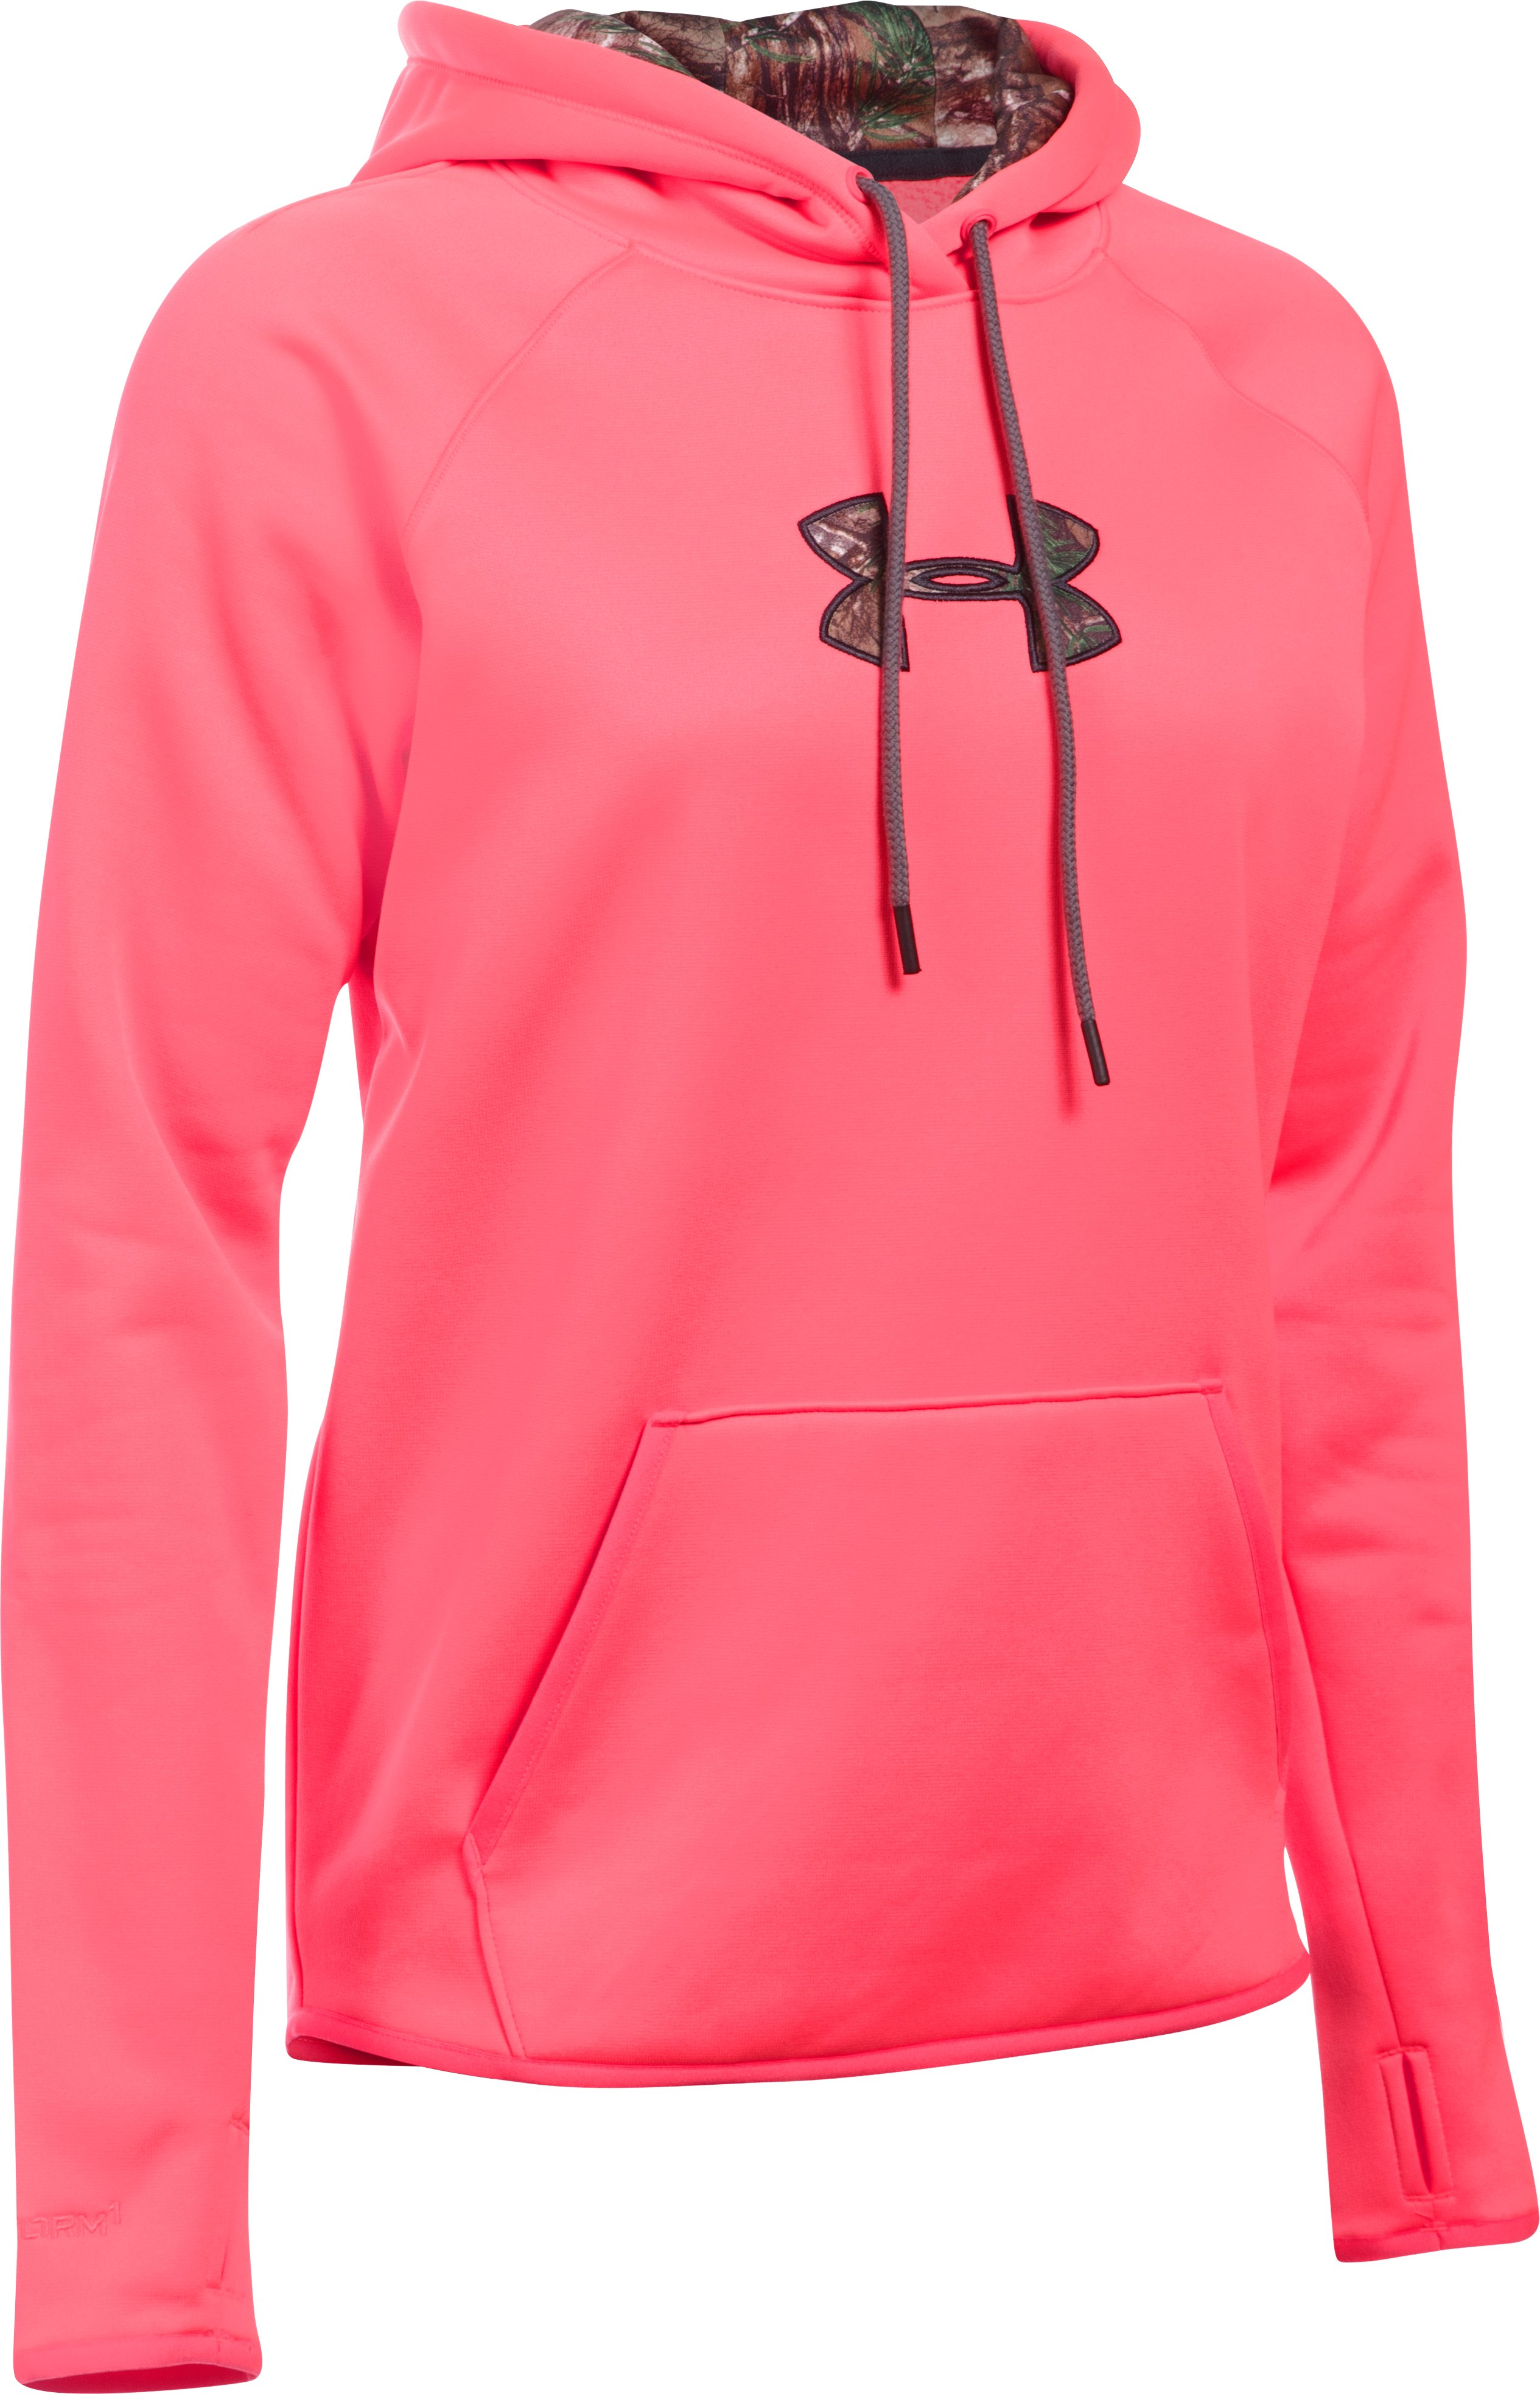 Women's UA Logo Caliber Hoodie, PINK CHROMA, undefined